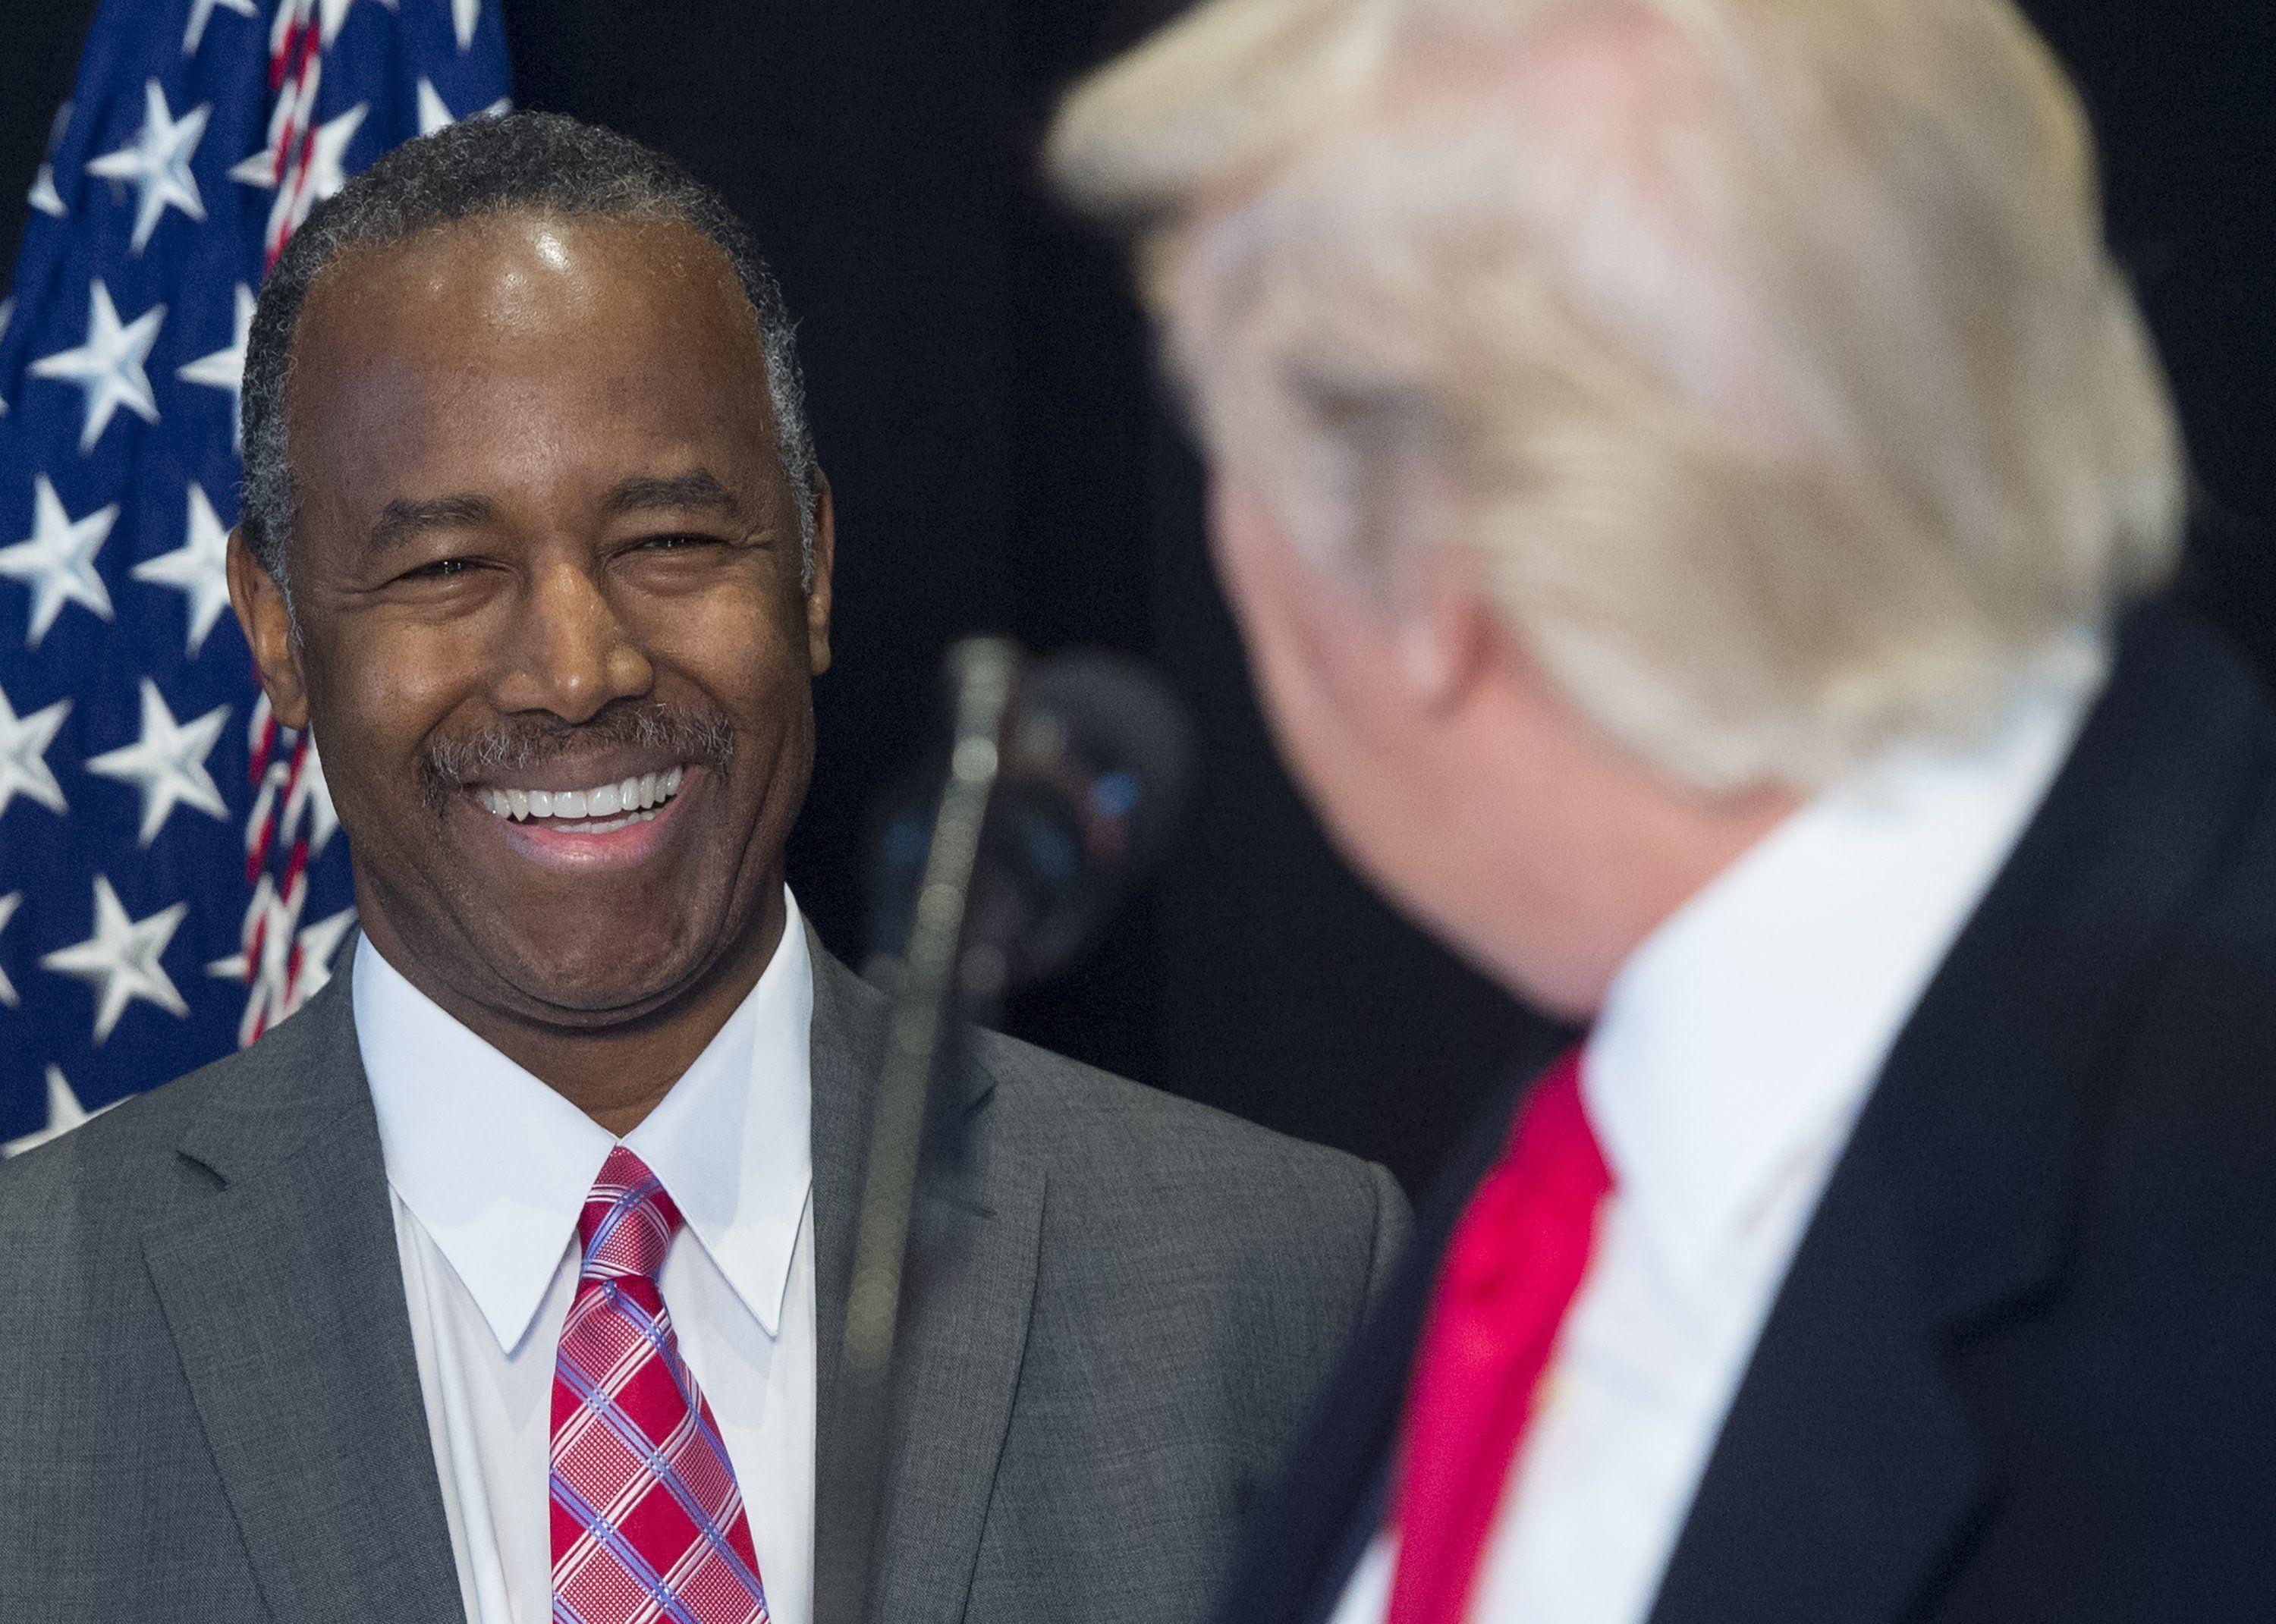 US President Donald Trump speaks alongside Dr. Ben Carson (L), his nominee for Secretary of Housing and Urban Development, following a tour of the Smithsonian National Museum of African American History and Culture in Washington, DC, February 21, 2017. / AFP / SAUL LOEB        (Photo credit should read SAUL LOEB/AFP/Getty Images)